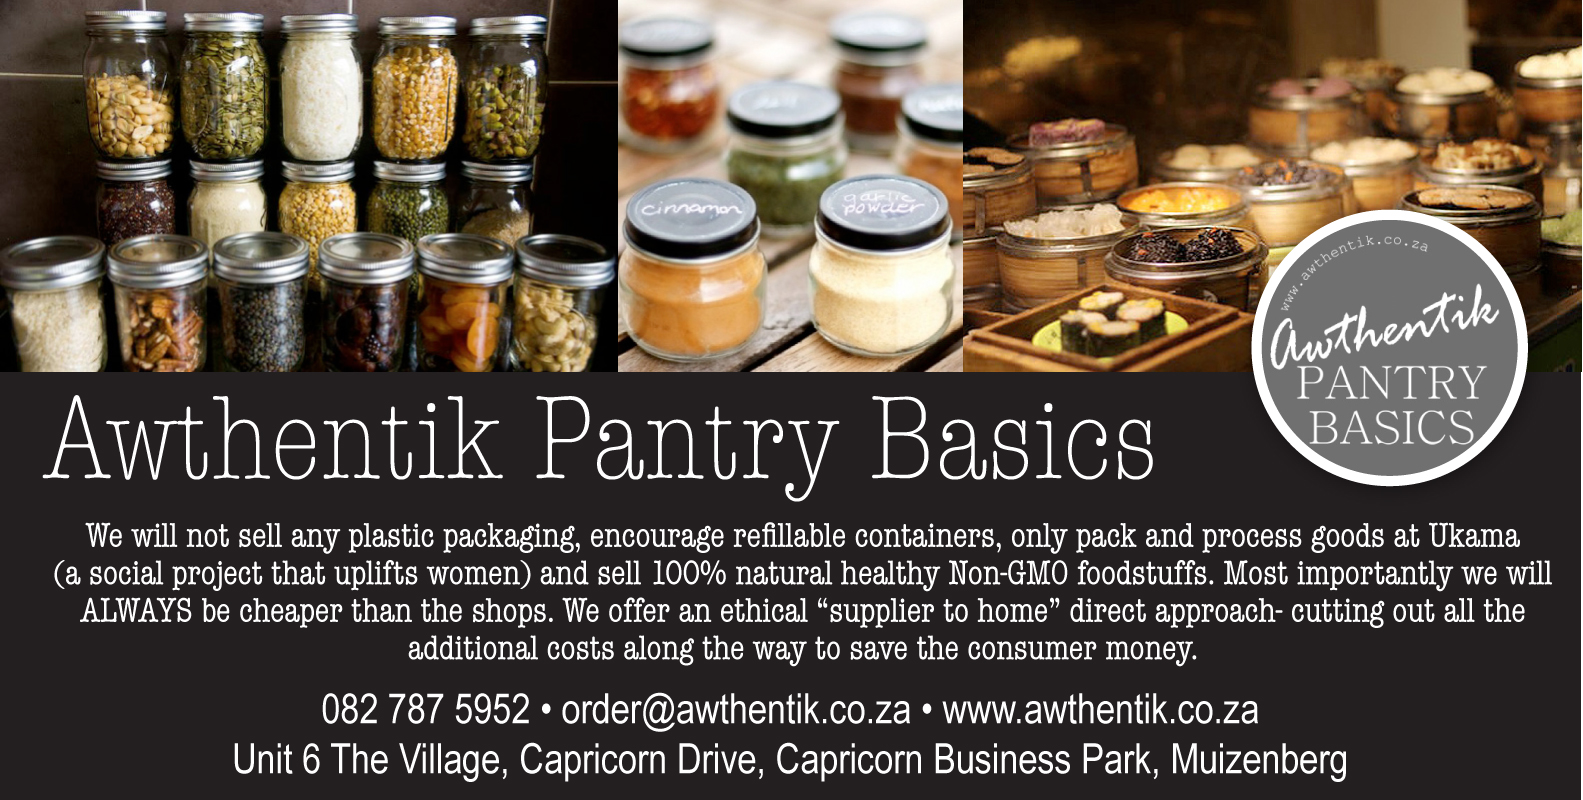 Awthentik Pantry Basics